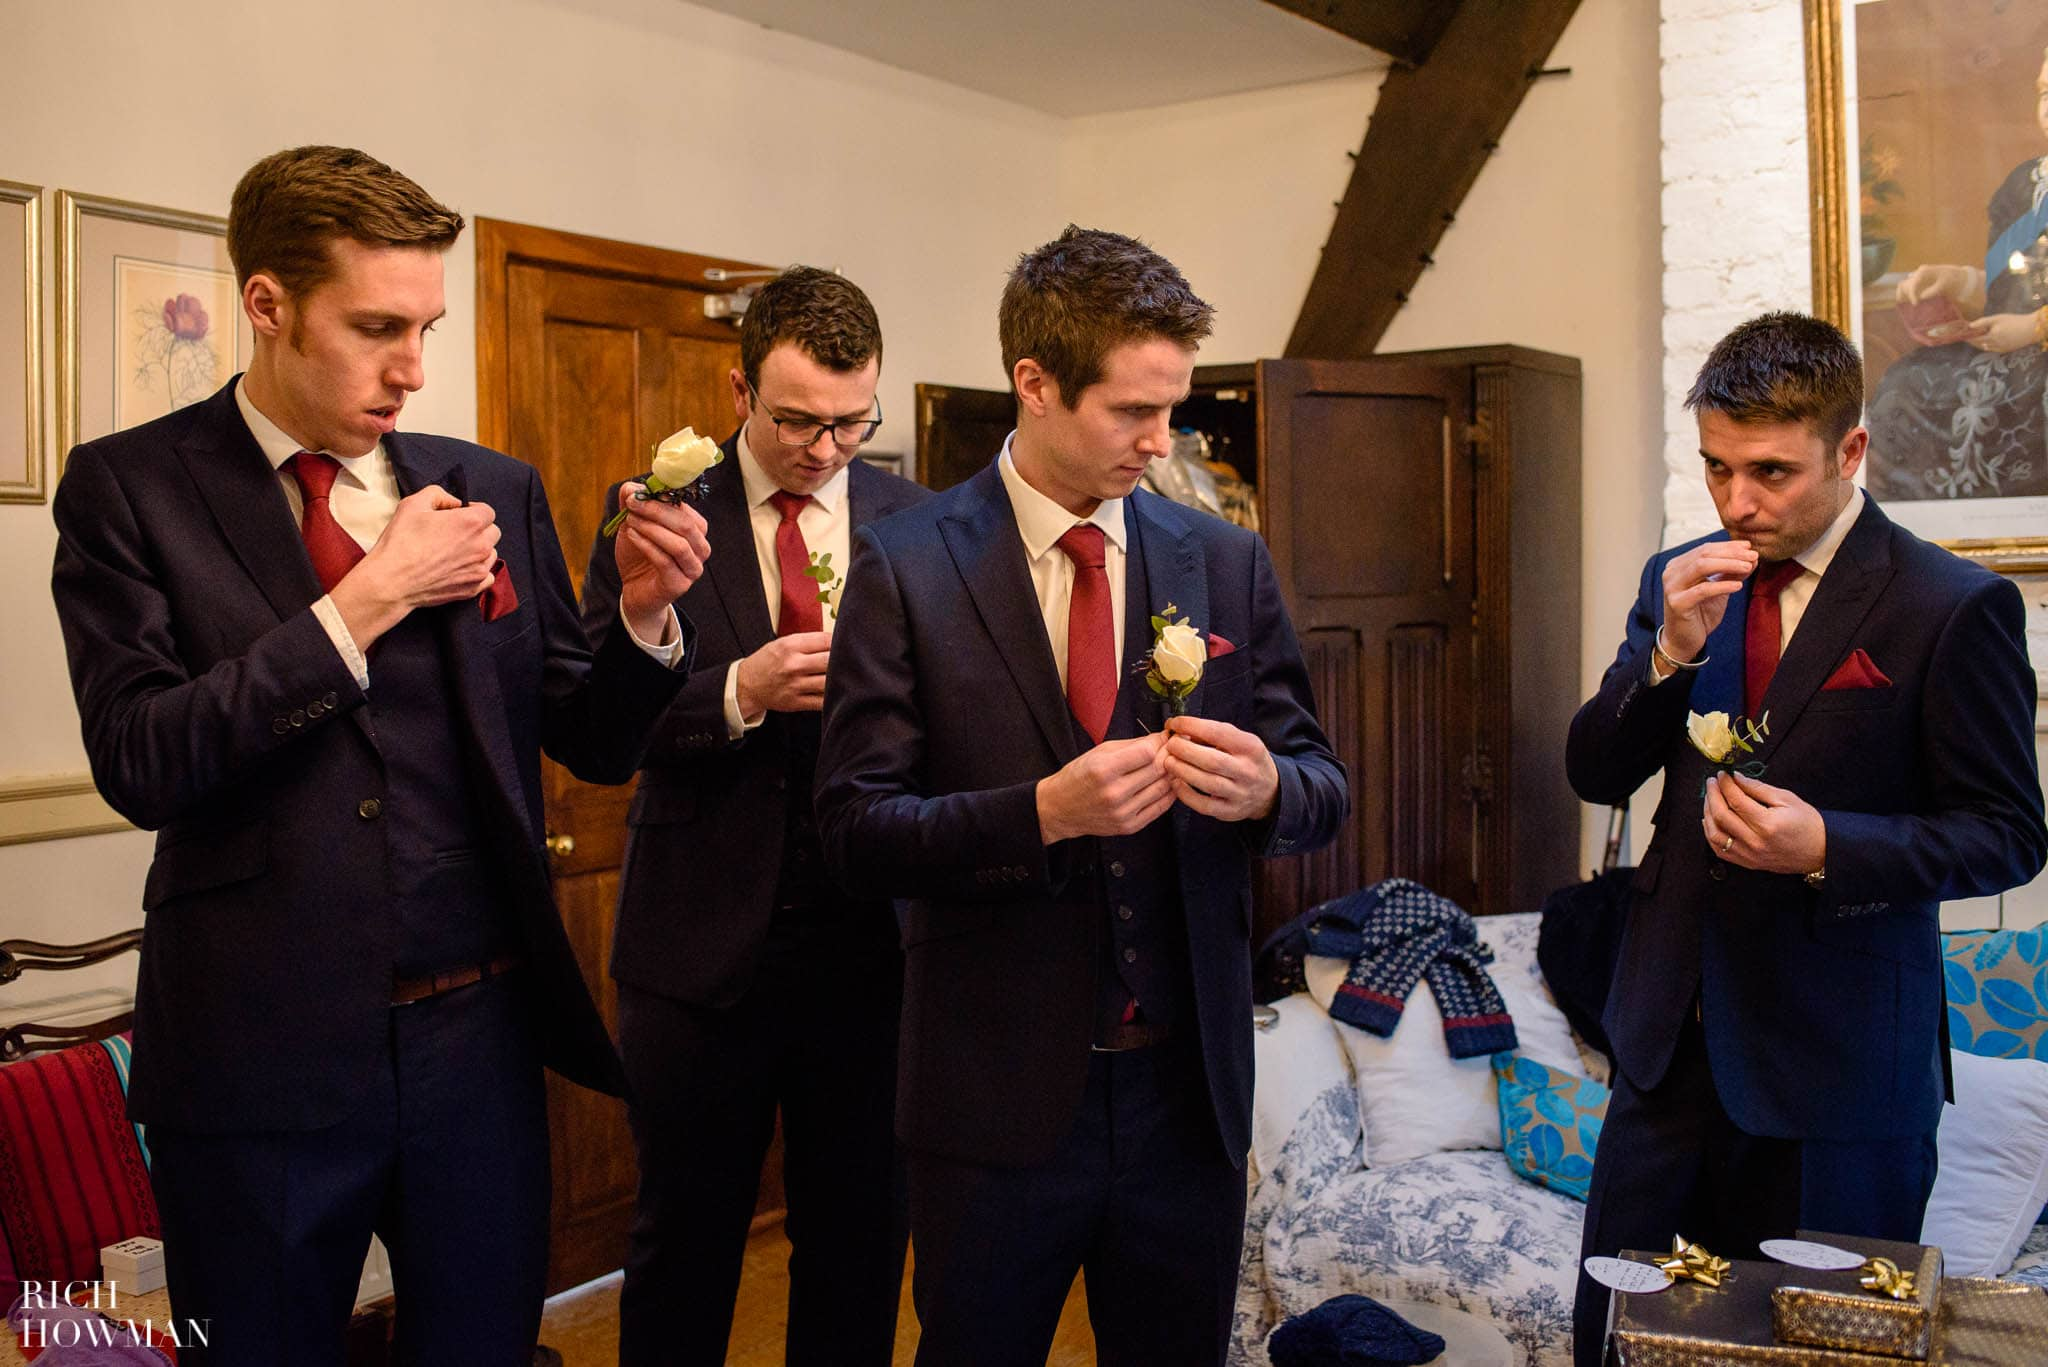 Groomsmen lined up putting on their wedding flowers at Huntsham Court